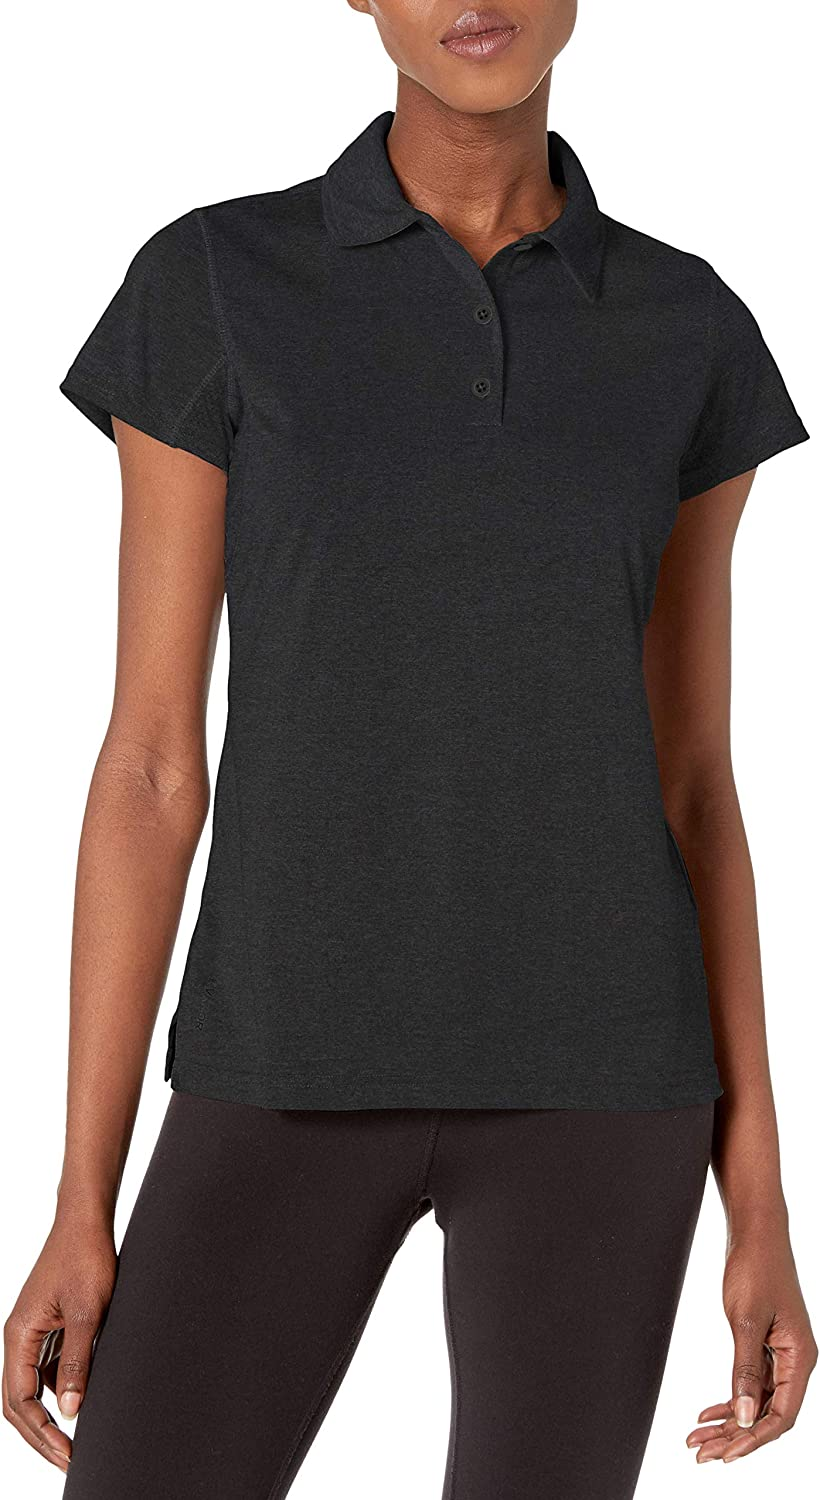 half Max 62% OFF Champion Women's Short Sleeve Performance Polo Dry Double